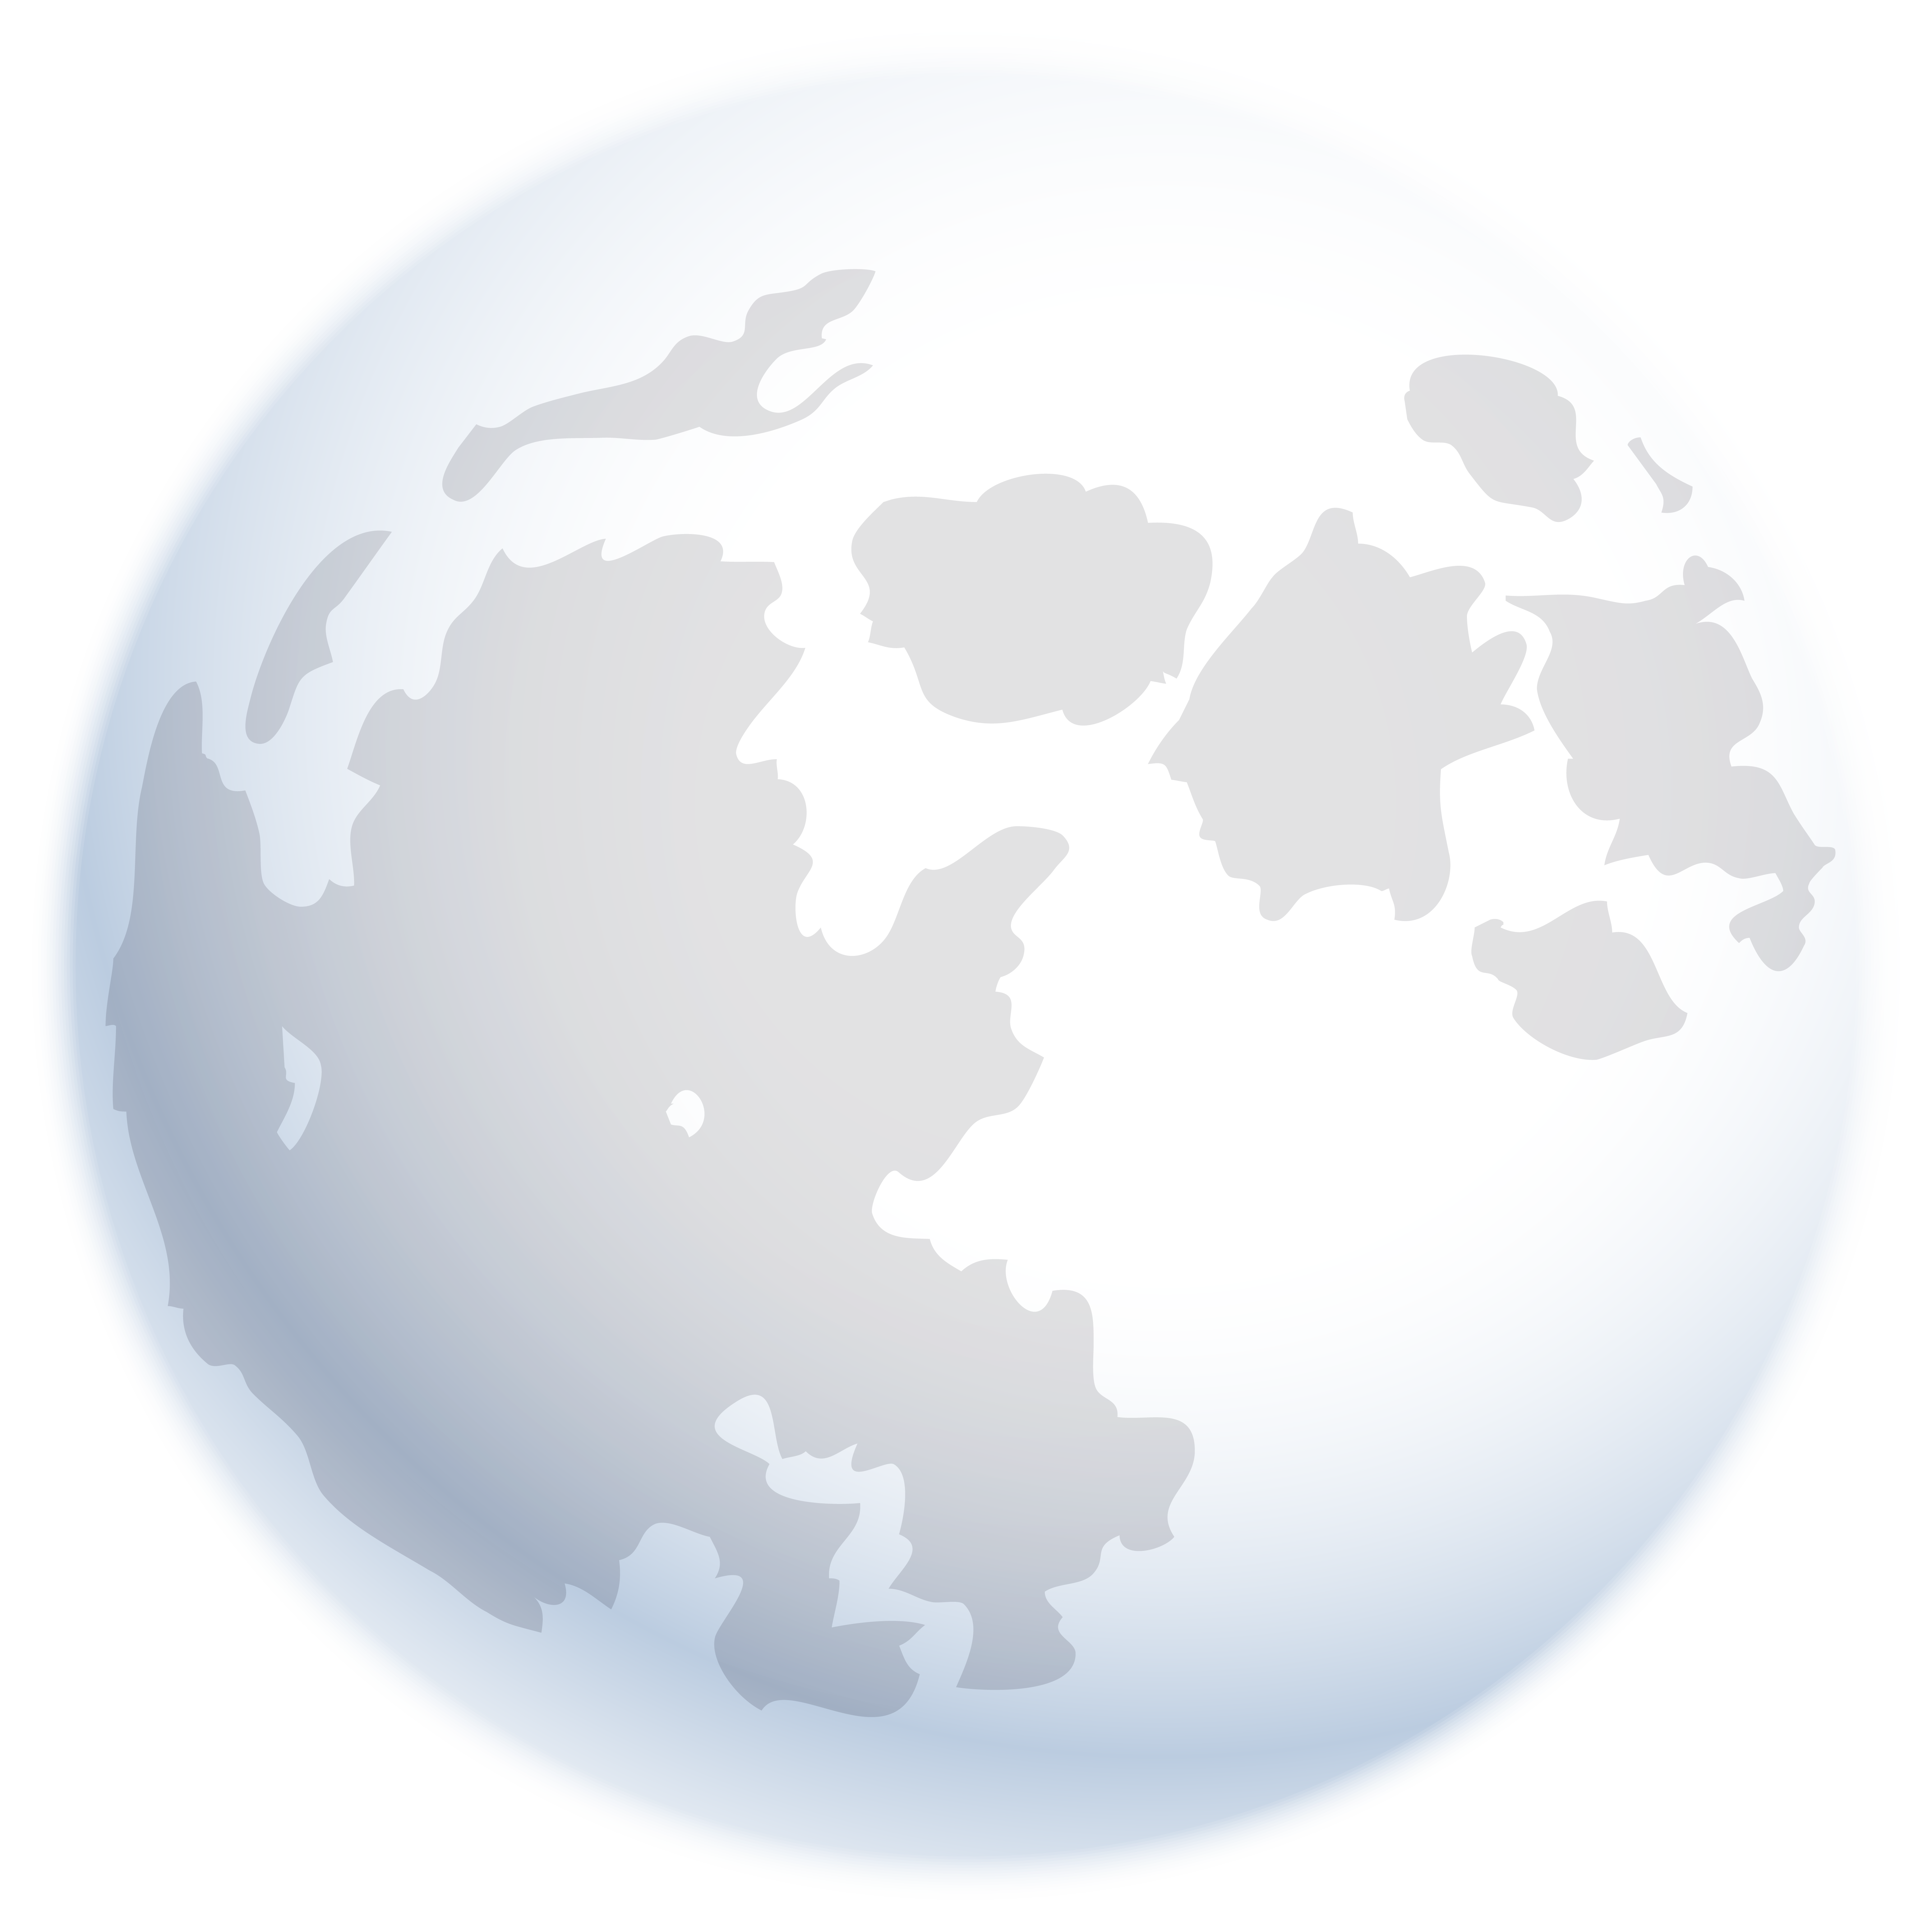 image library library Realistic png image gallery. Moon clipart